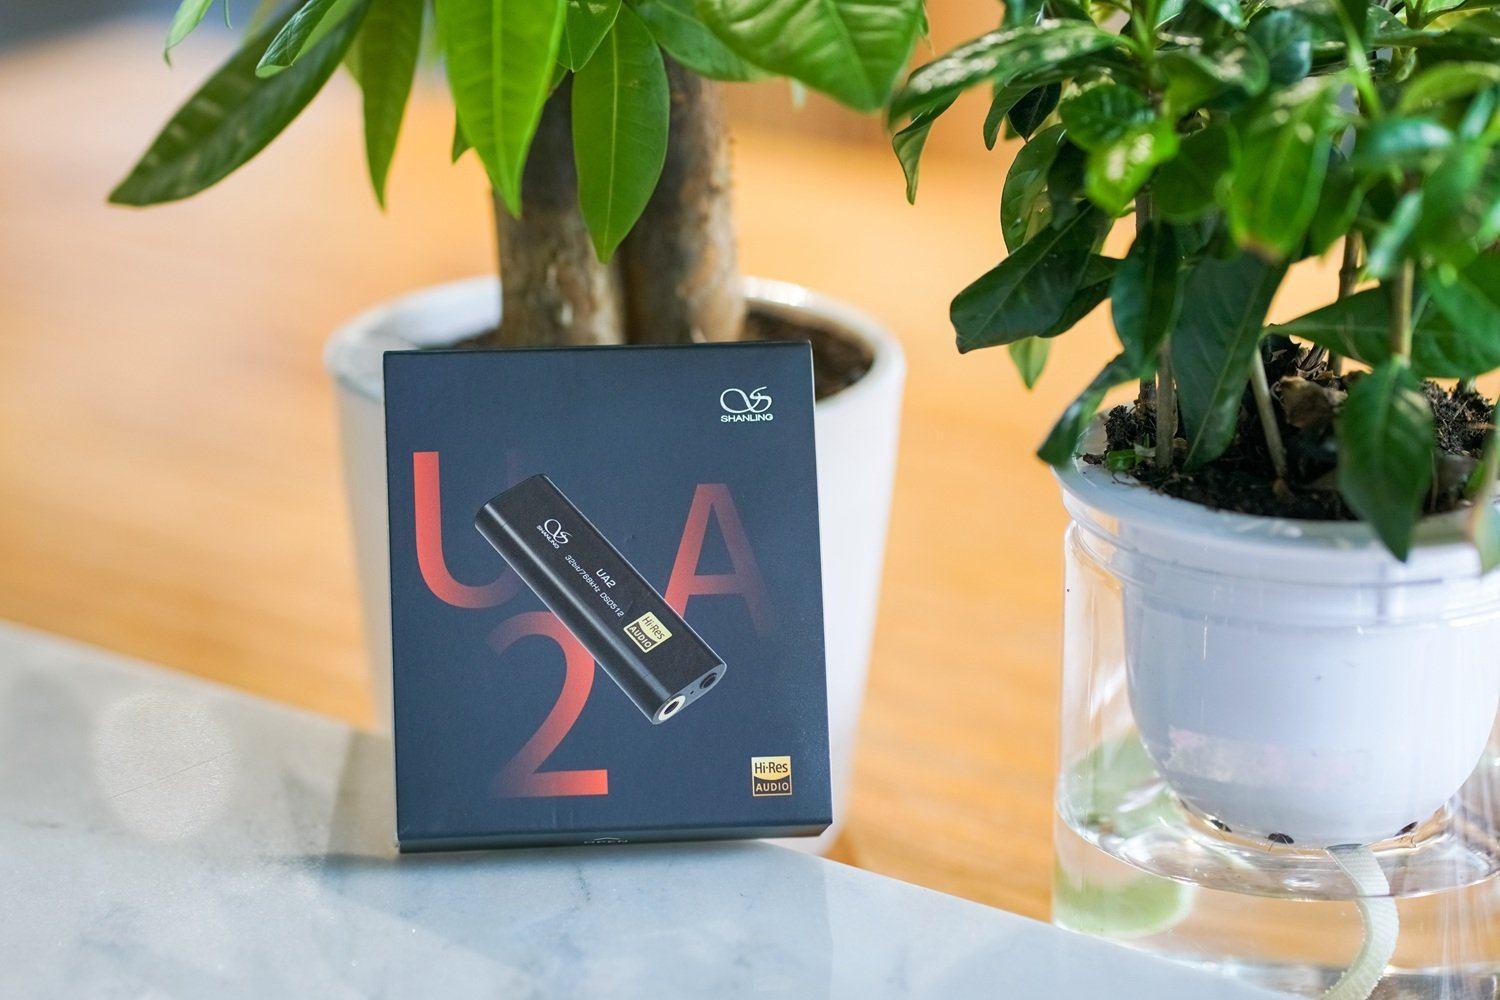 Shanling UA2 Portable DAC/AMP Unboxing & Impressions: Hi-Res In The Pocket